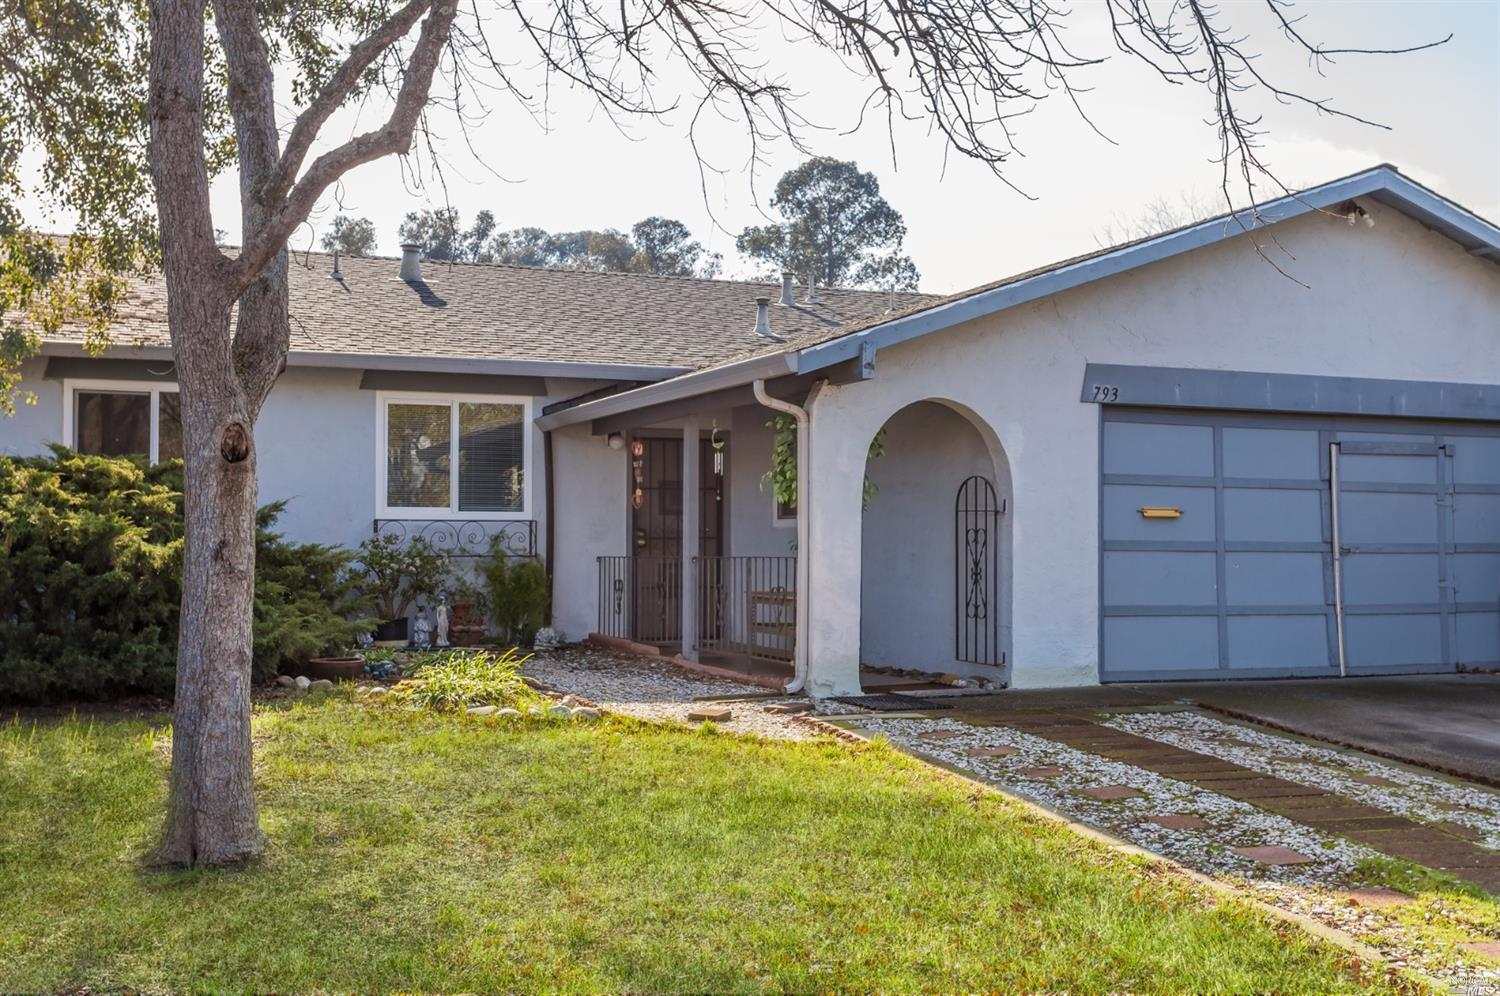 793 Goldcoast Dr  | Sold 2/28/19 at $330,000